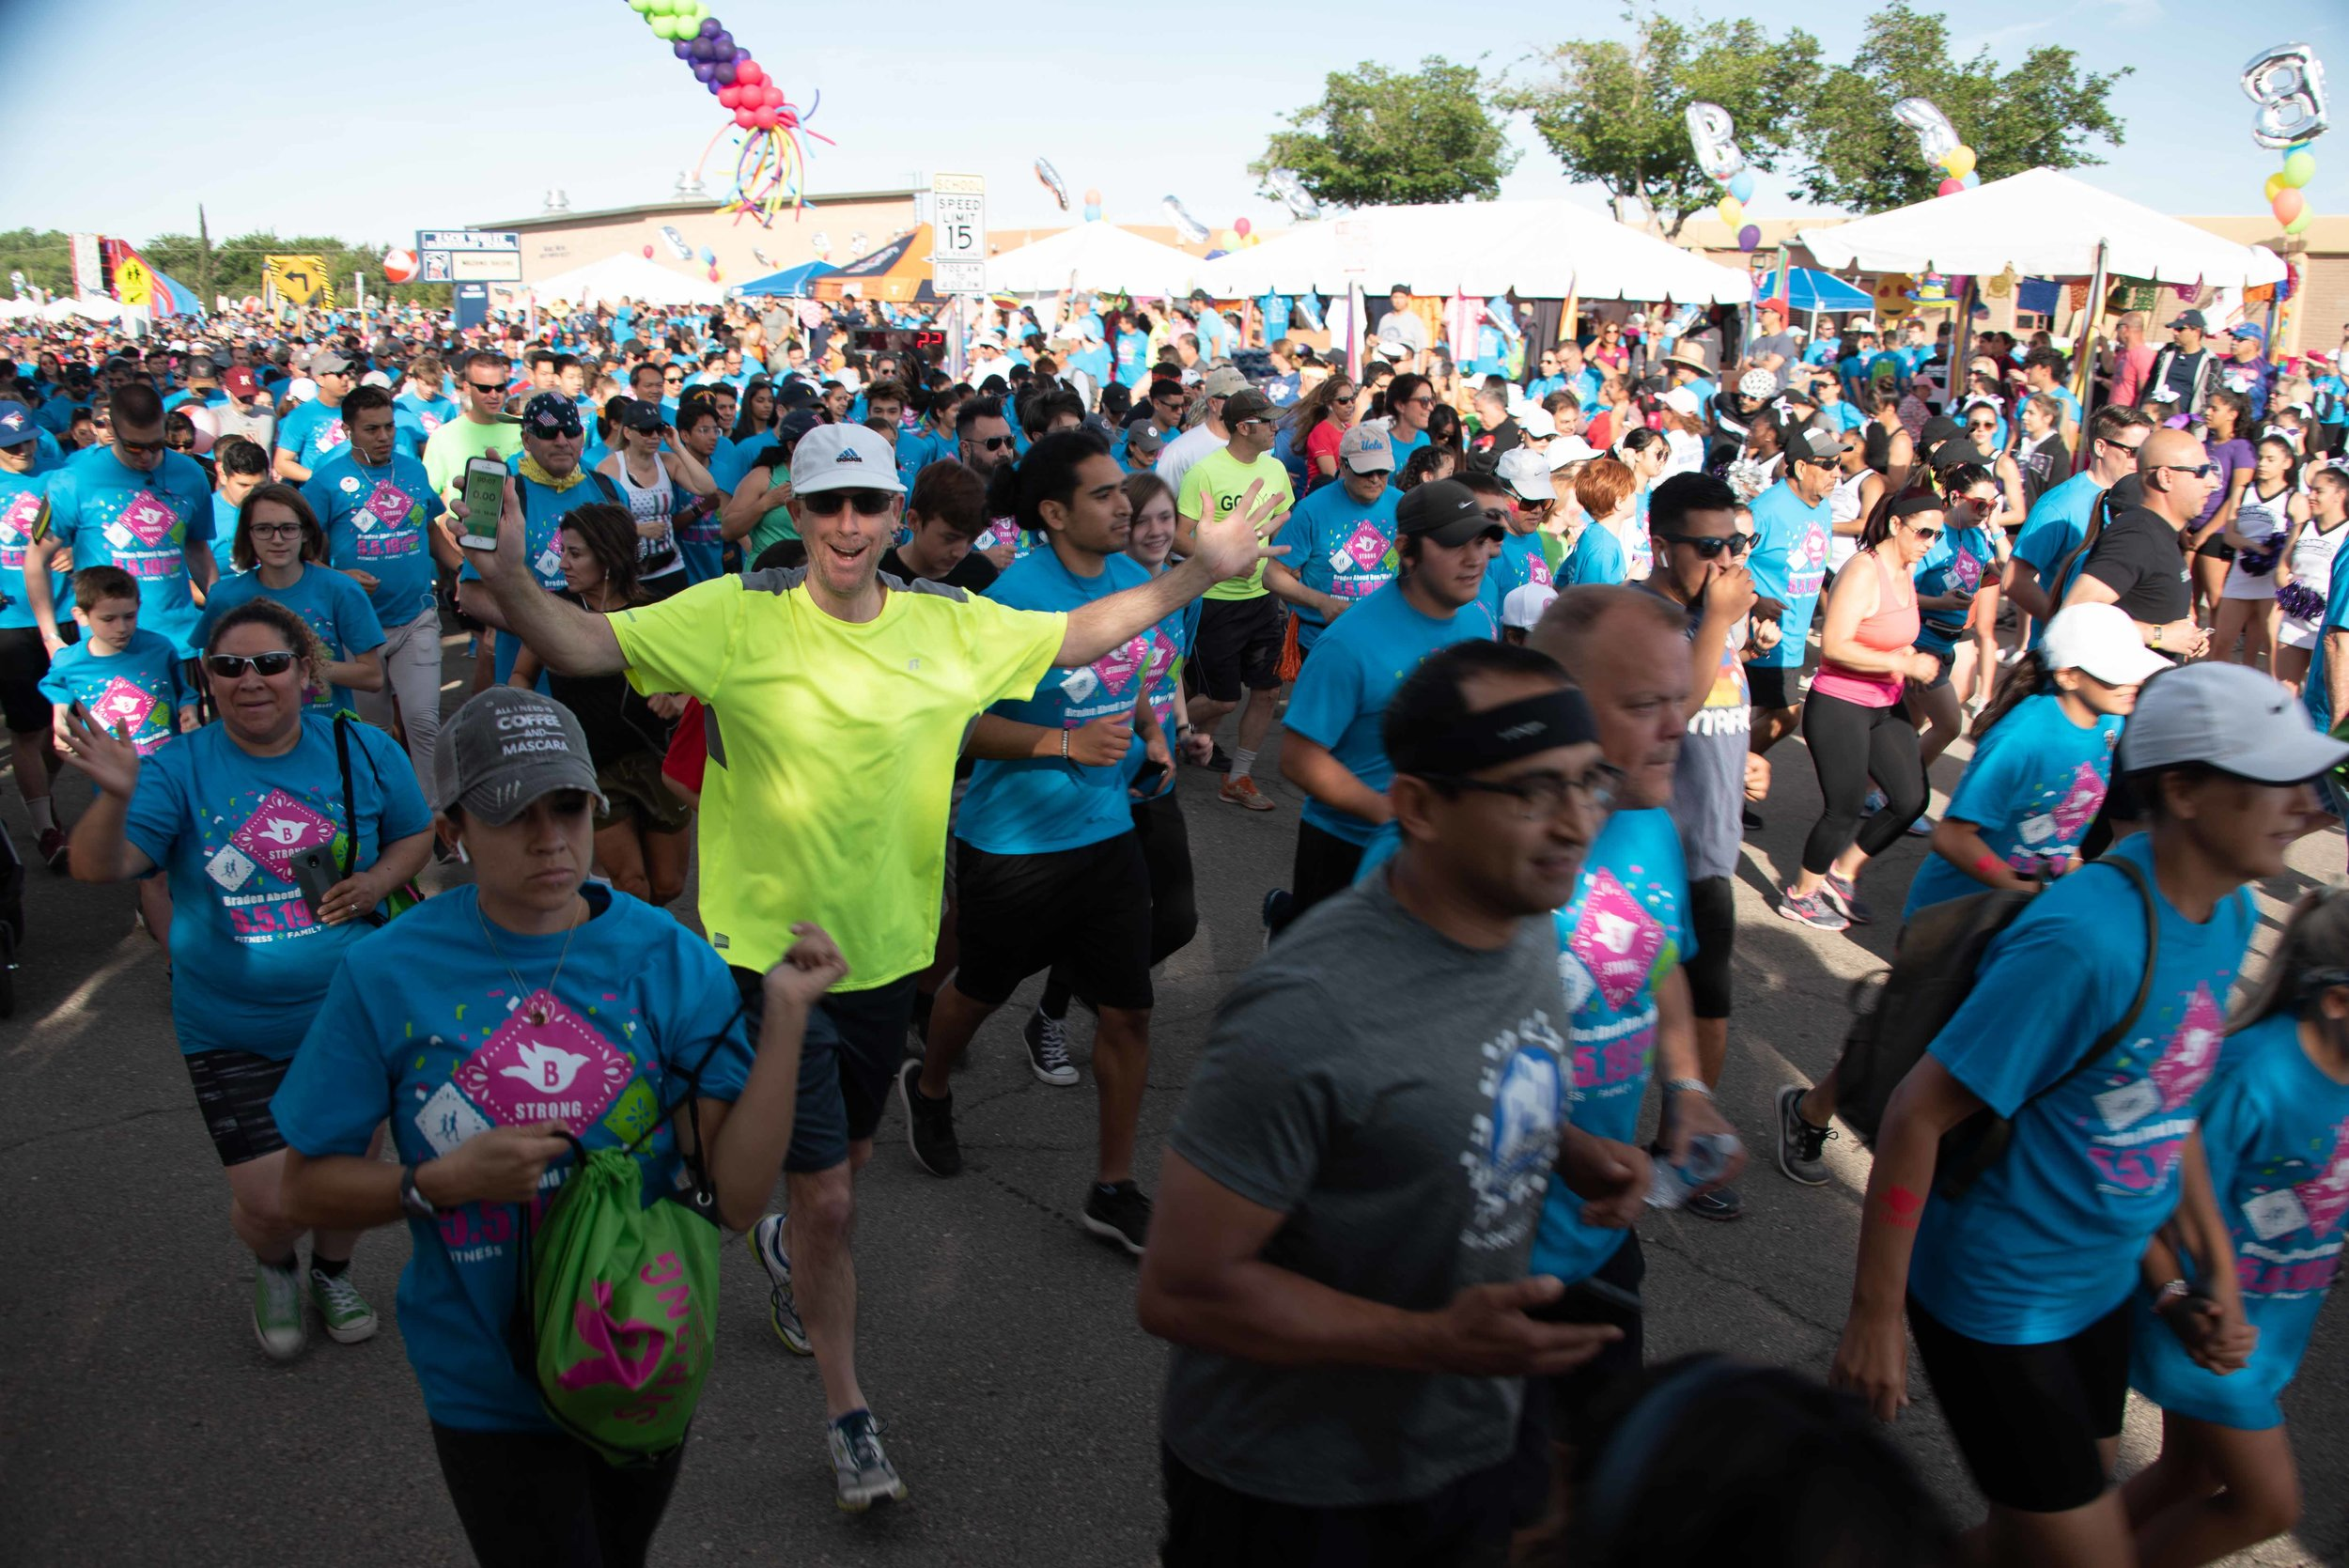 9,700 STRONG - Thank you to all our sponsors, volunteers and participants for making our 13th year bigger and better than ever! Mark your calendars for this year's race, May 3rd, 2020!